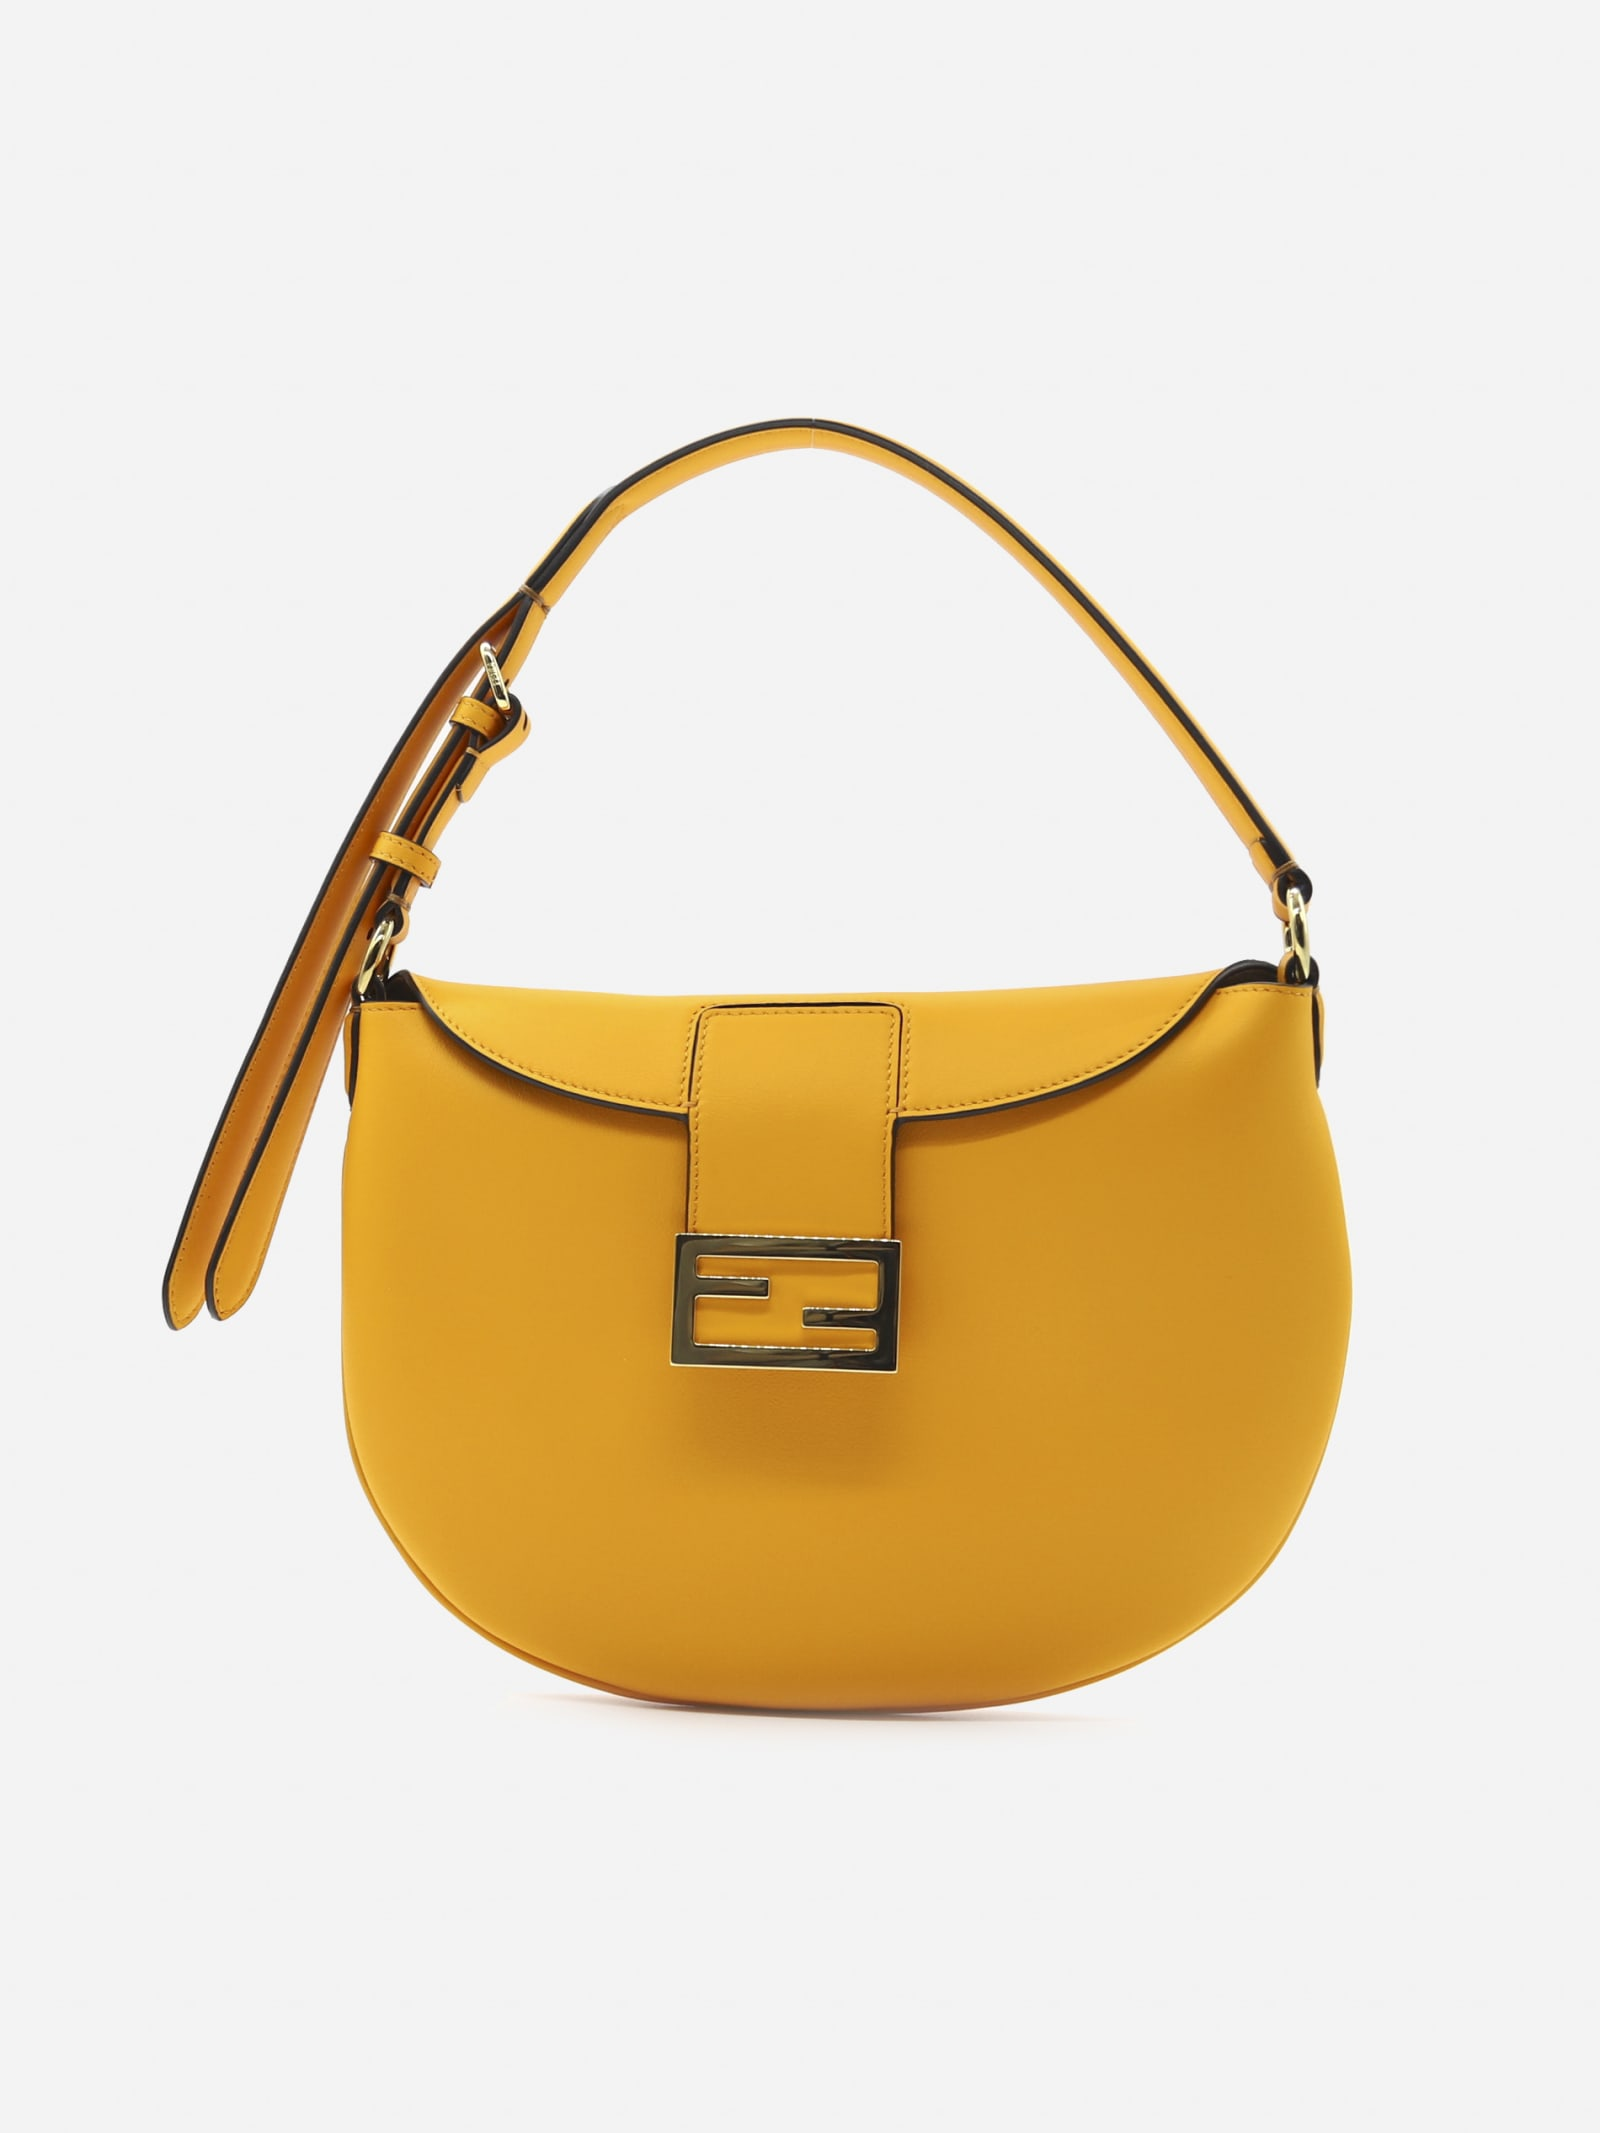 Fendi Croissant Bag In Leather With Ff Motif Buckle